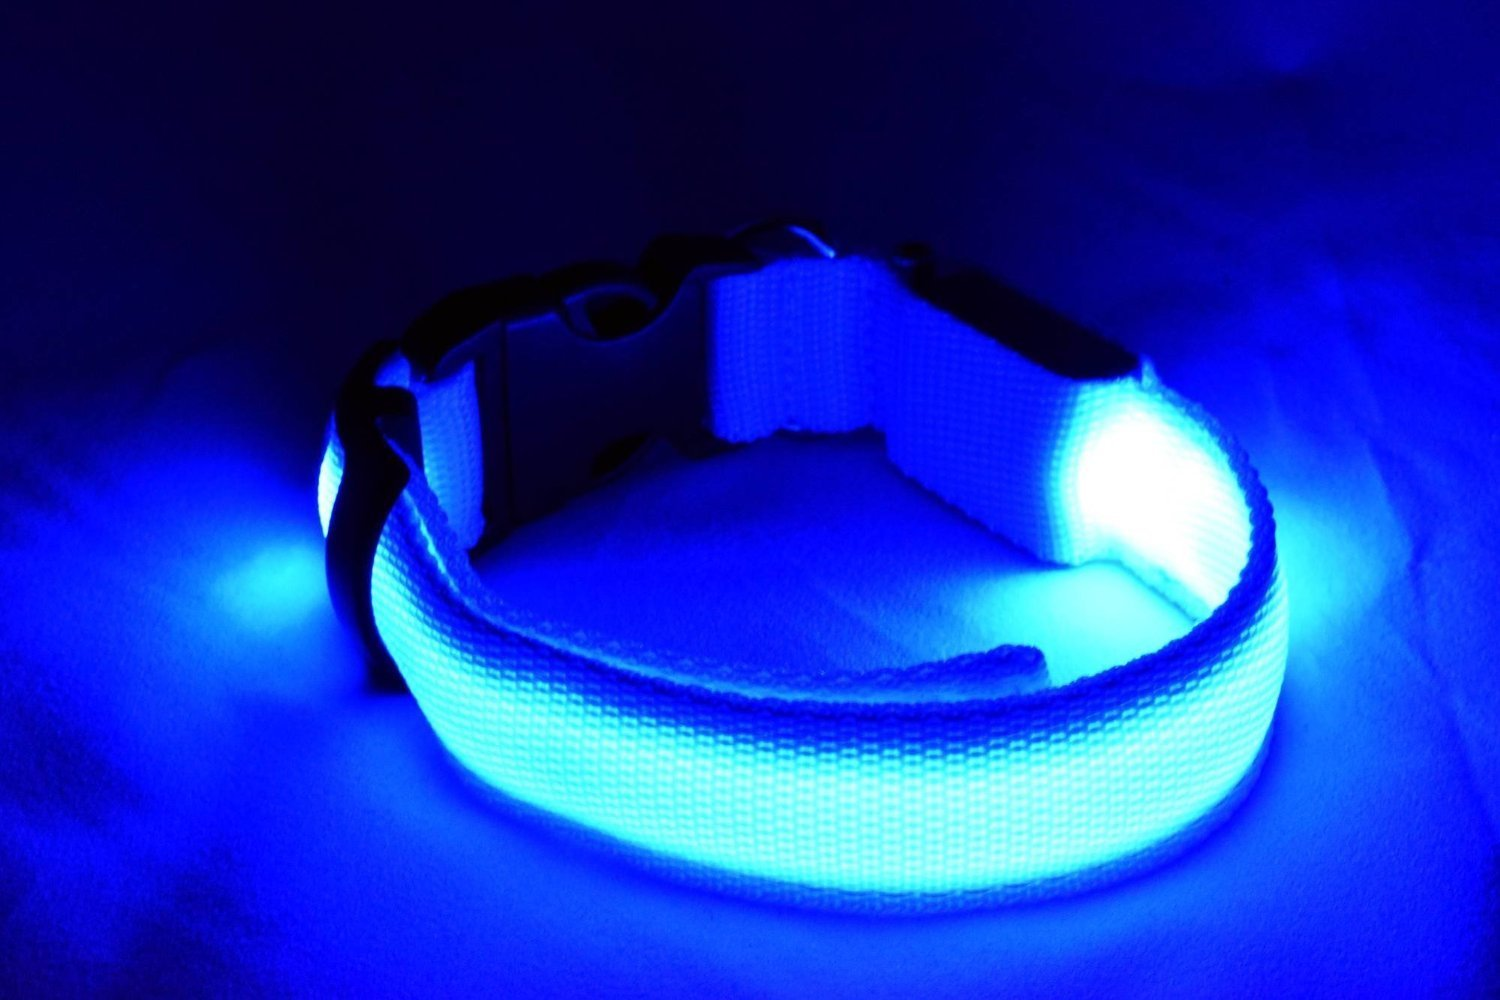 LED Dog Safety Collar Flashing Light up, Flashing Dog Collar with Batteries - Keep Your Friend Safe in Night Walks ( Large (17.7~20.5 inch), Blue) by WOWMO